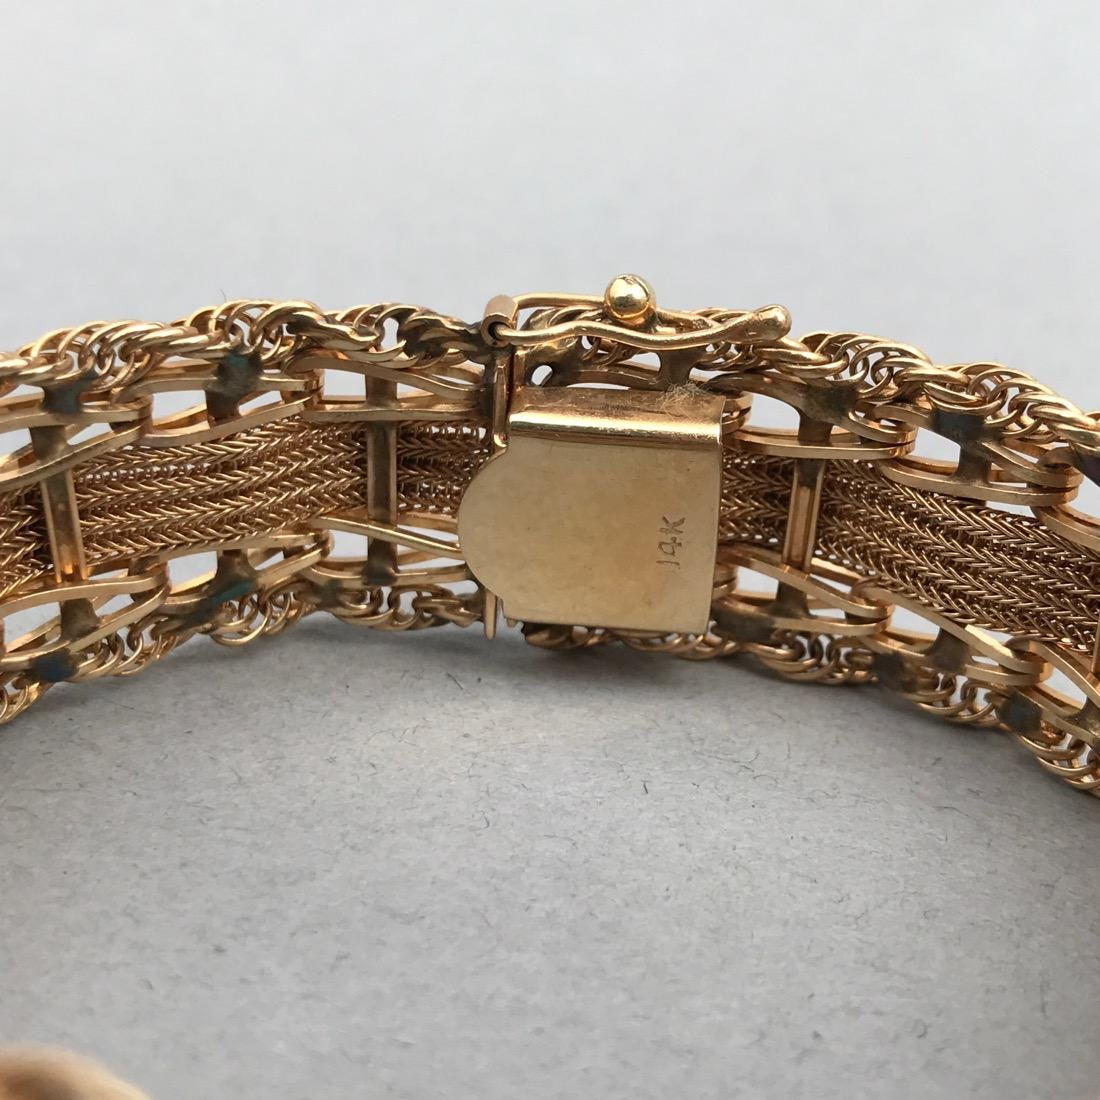 Intricate 14K Gold Bracelet - 2